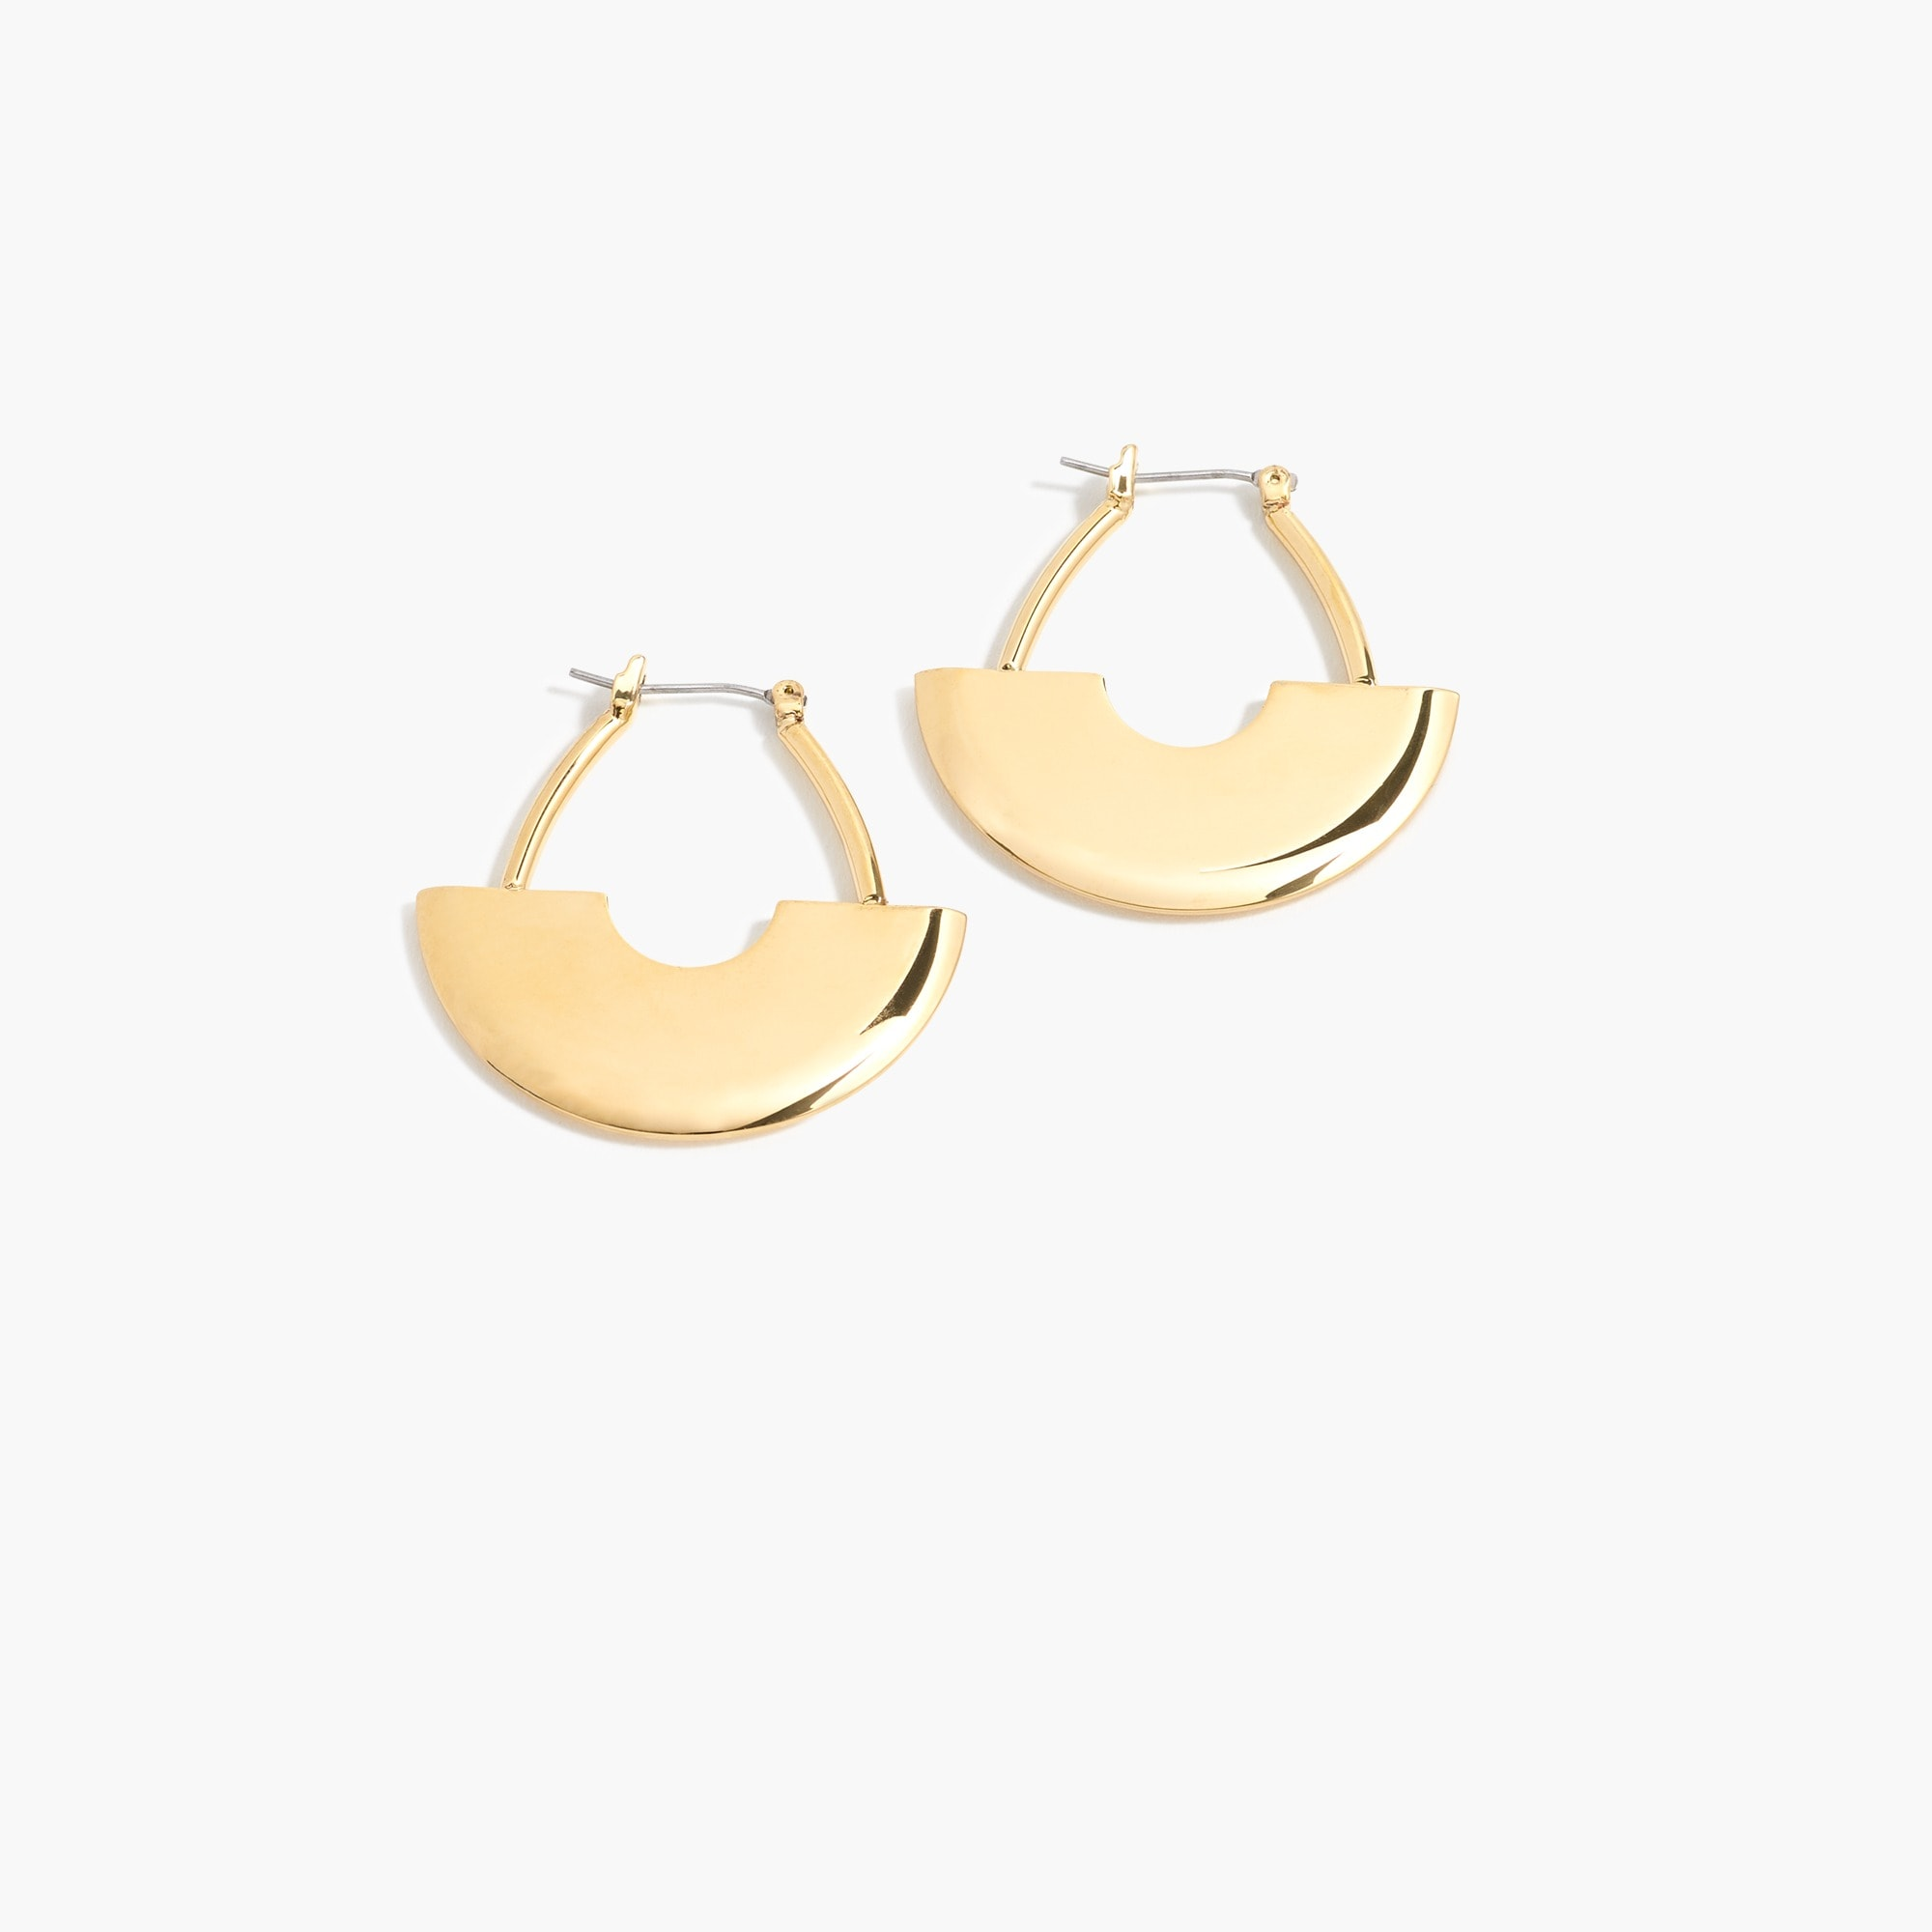 gold art deco hoop earrings : women jewelry shop